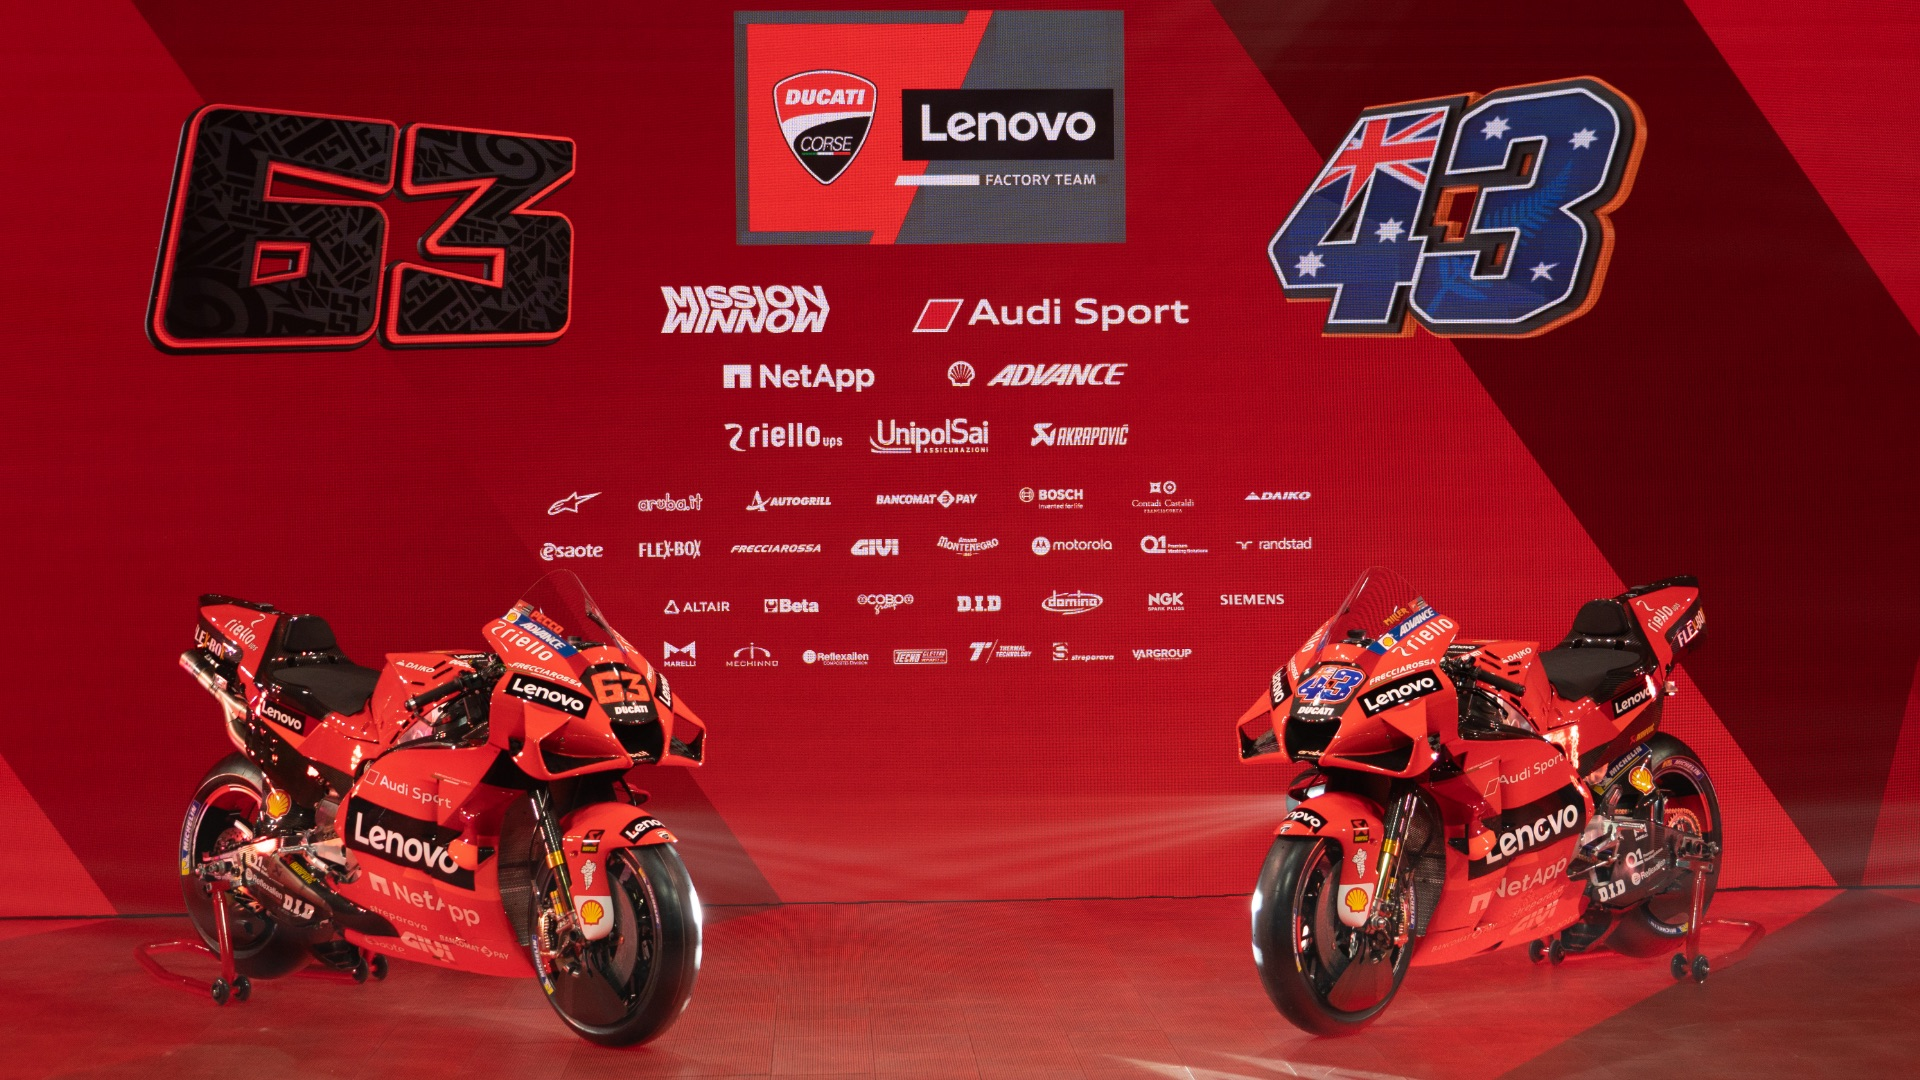 The 2021 Ducati Lenovo Team presented online.